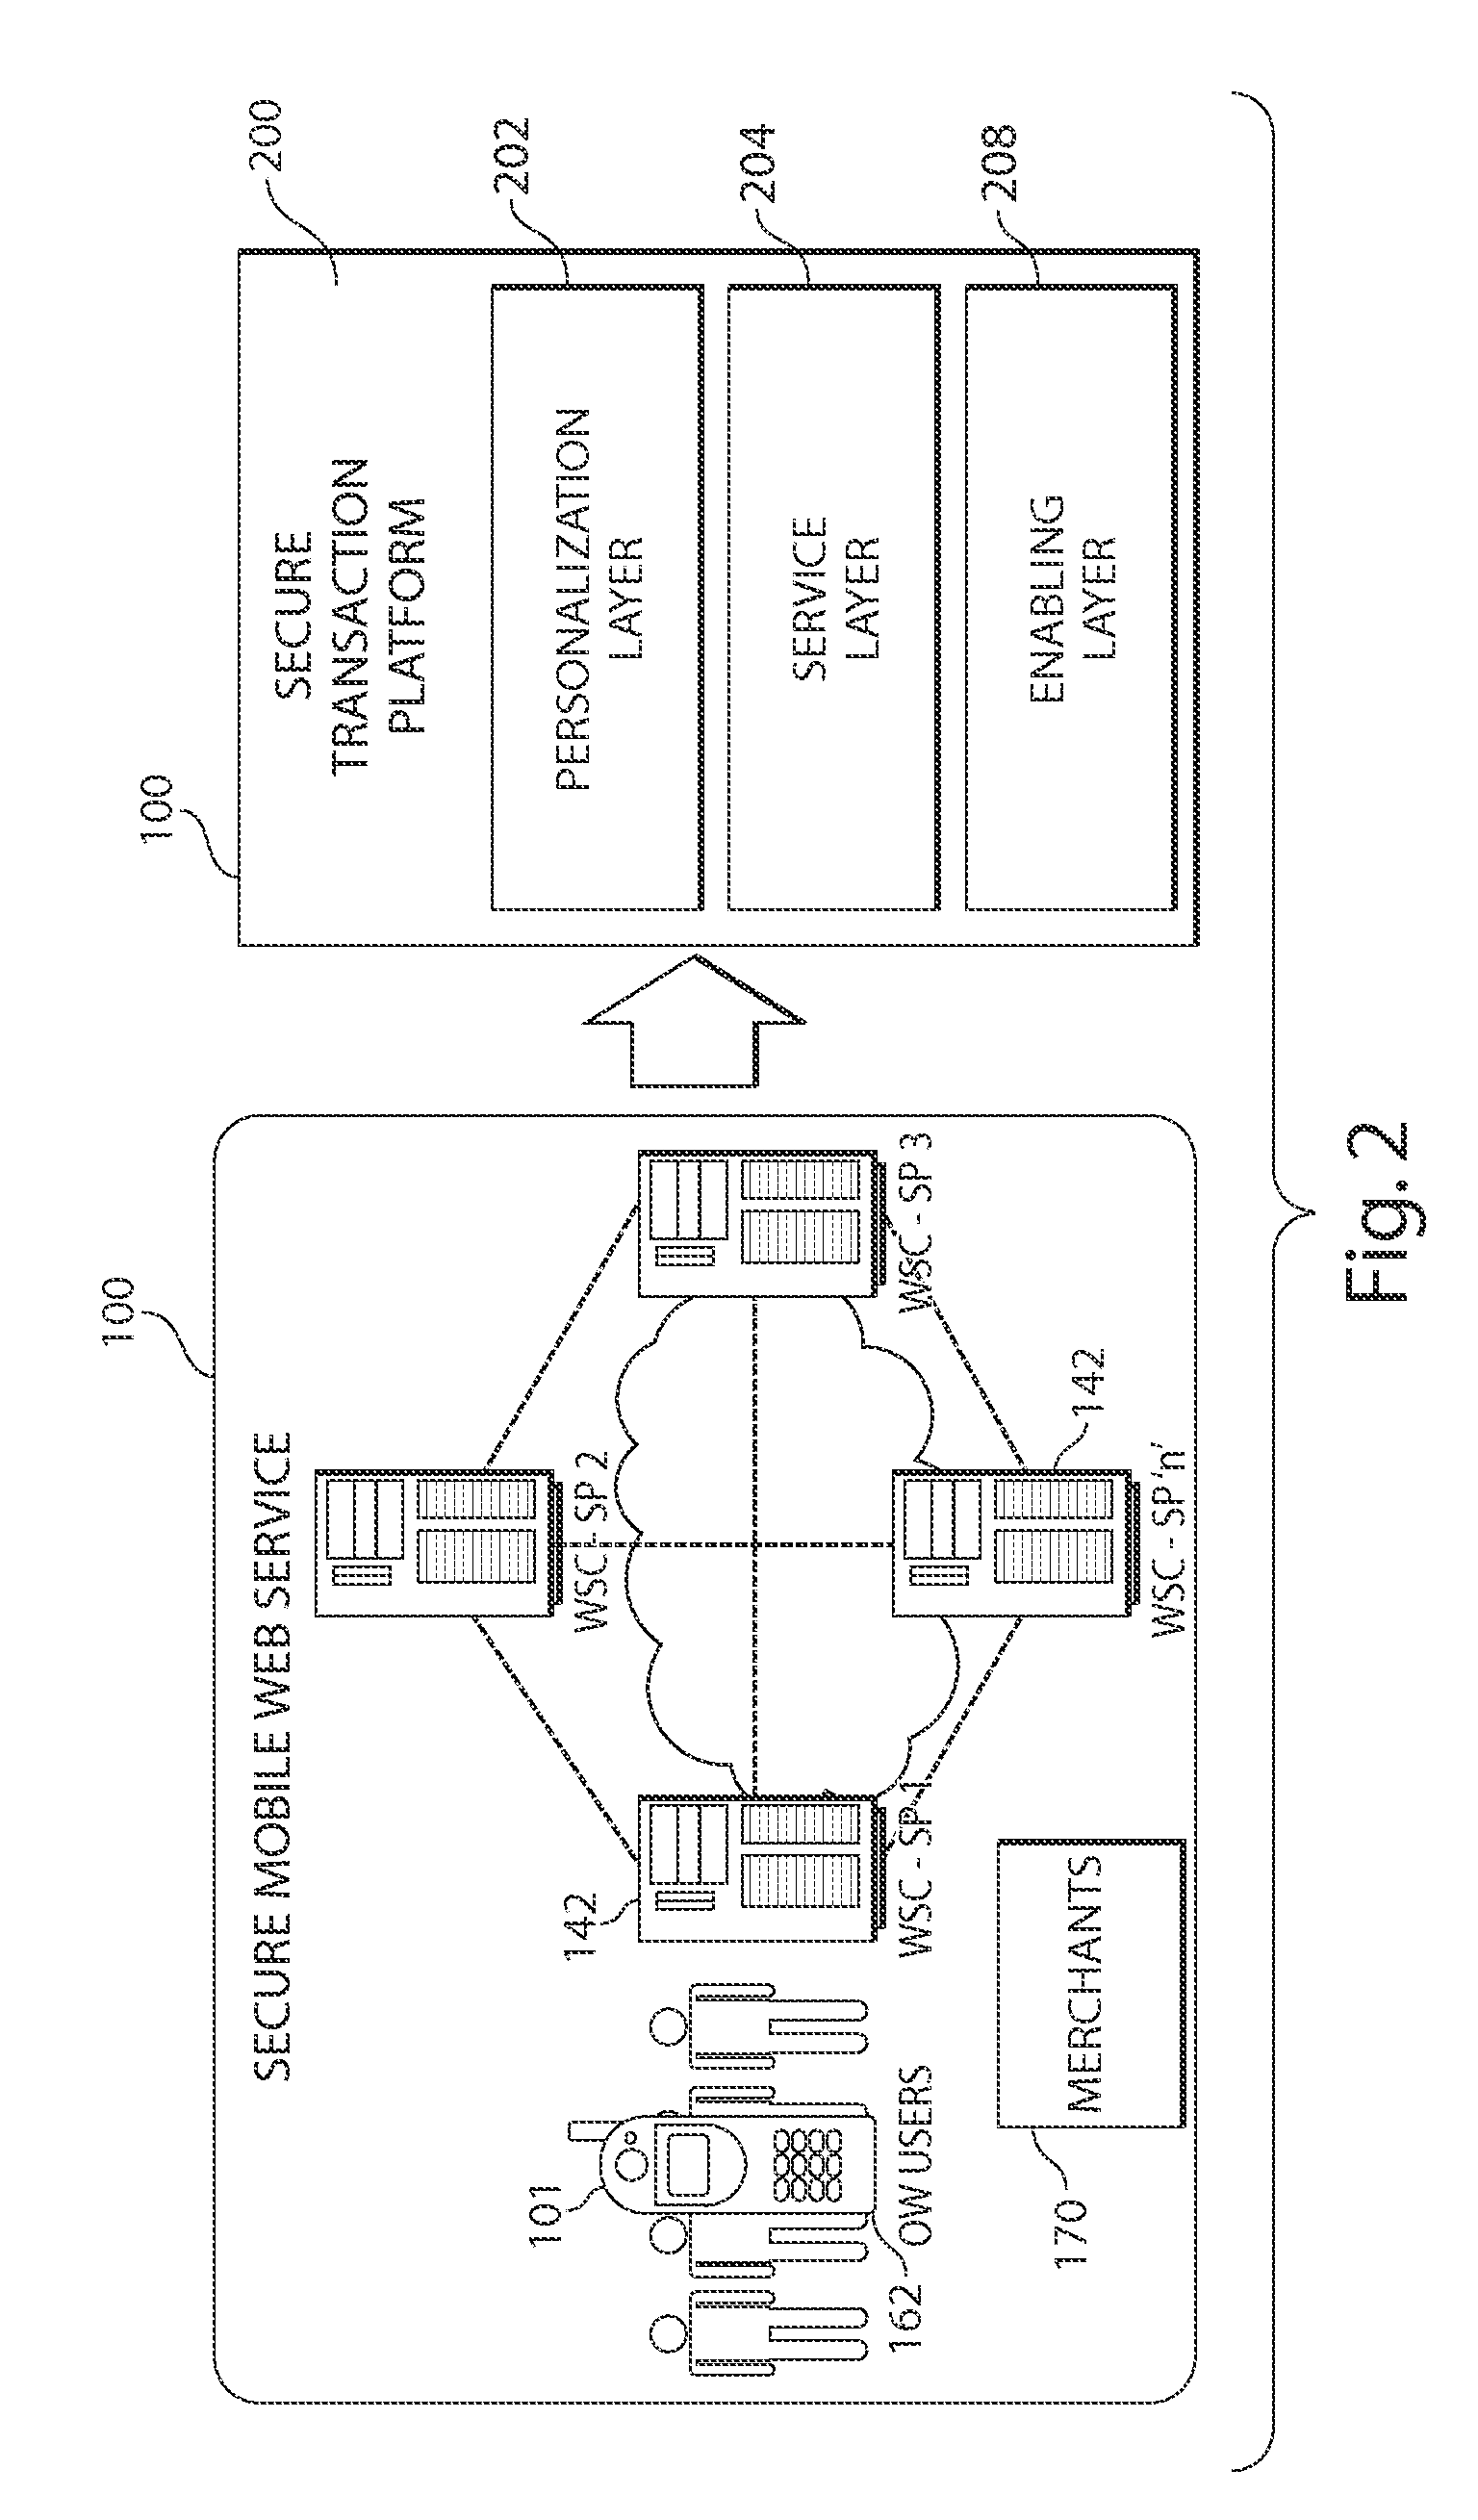 Patent Us20120005089 Transactional Services Google Patents 3204 Cat Engine Diagram Drawing